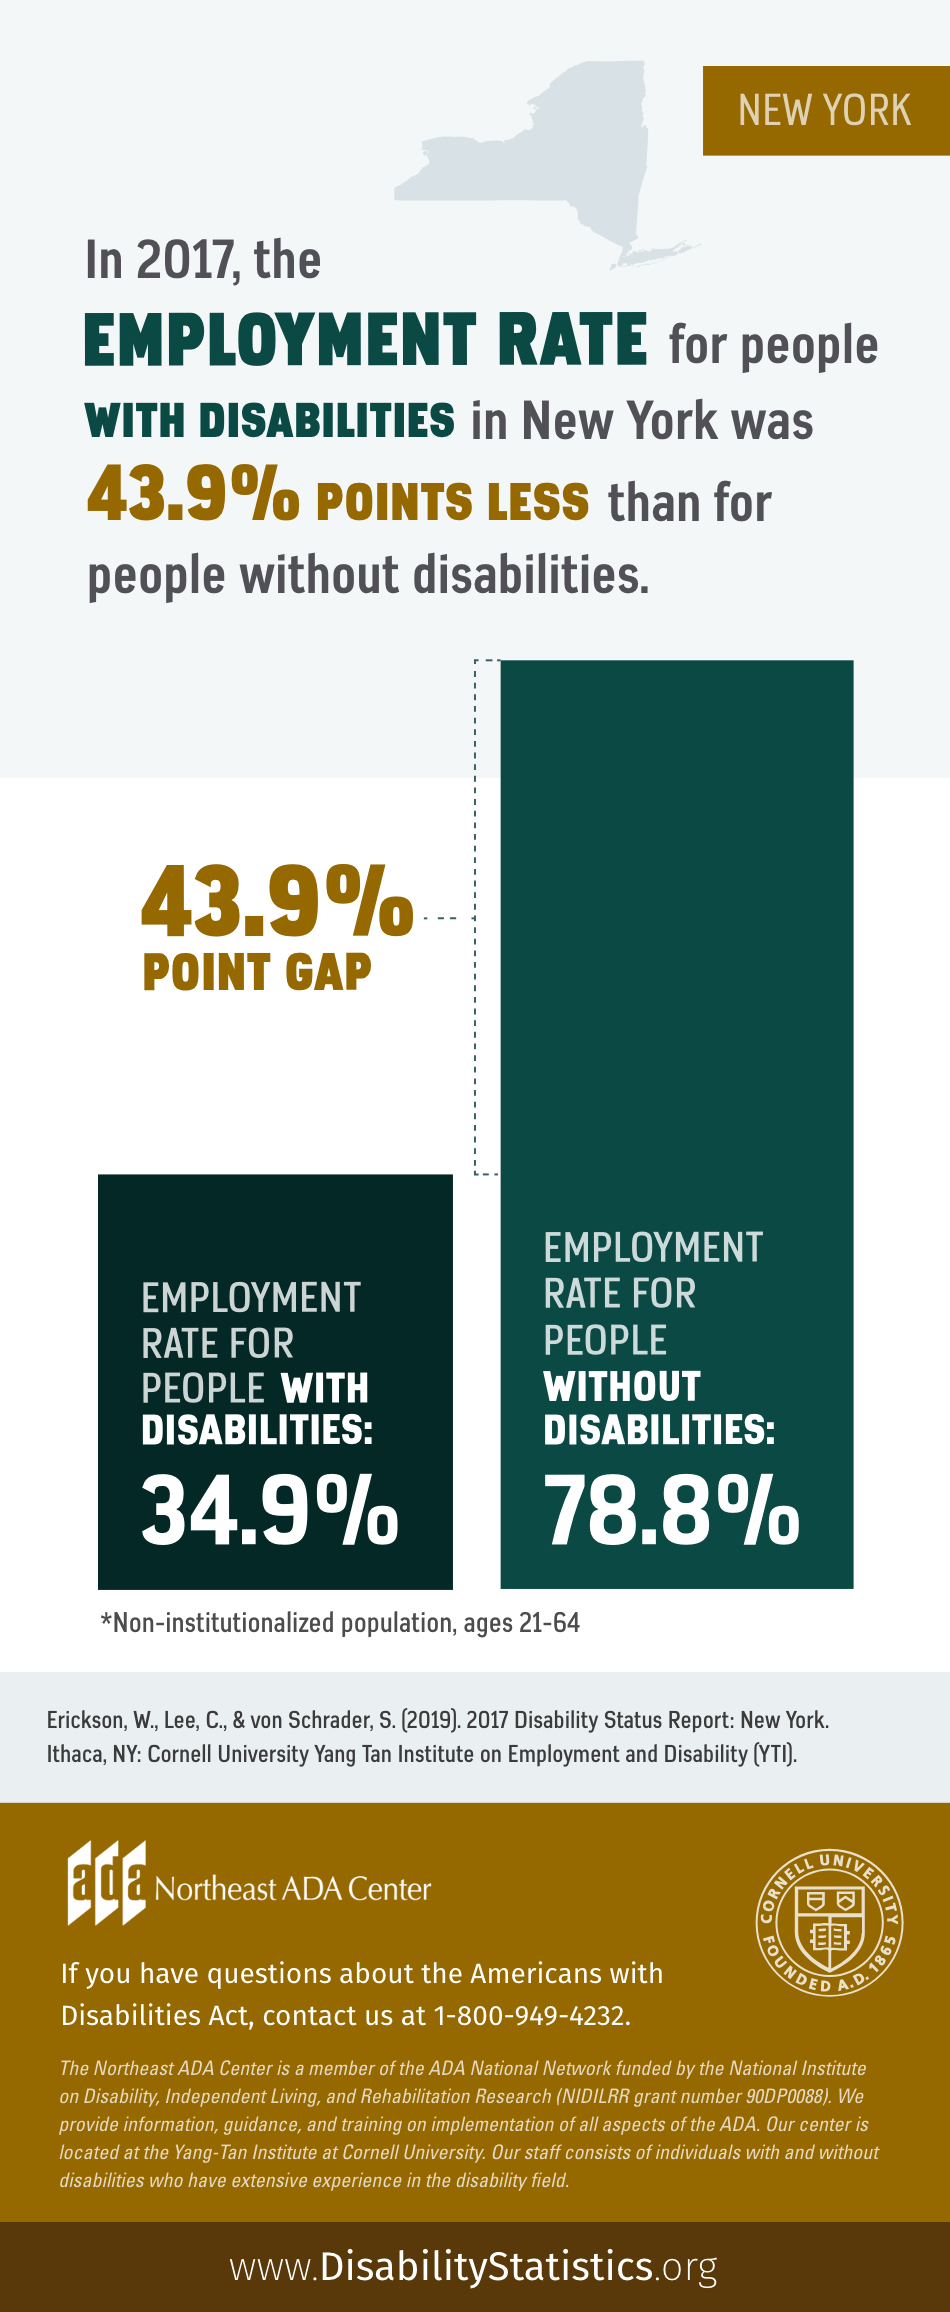 Infographic featuring text on top of an outline of New York State along with a bar graph showing employment rates for people with disabilities and people without disabilities in the New York State: